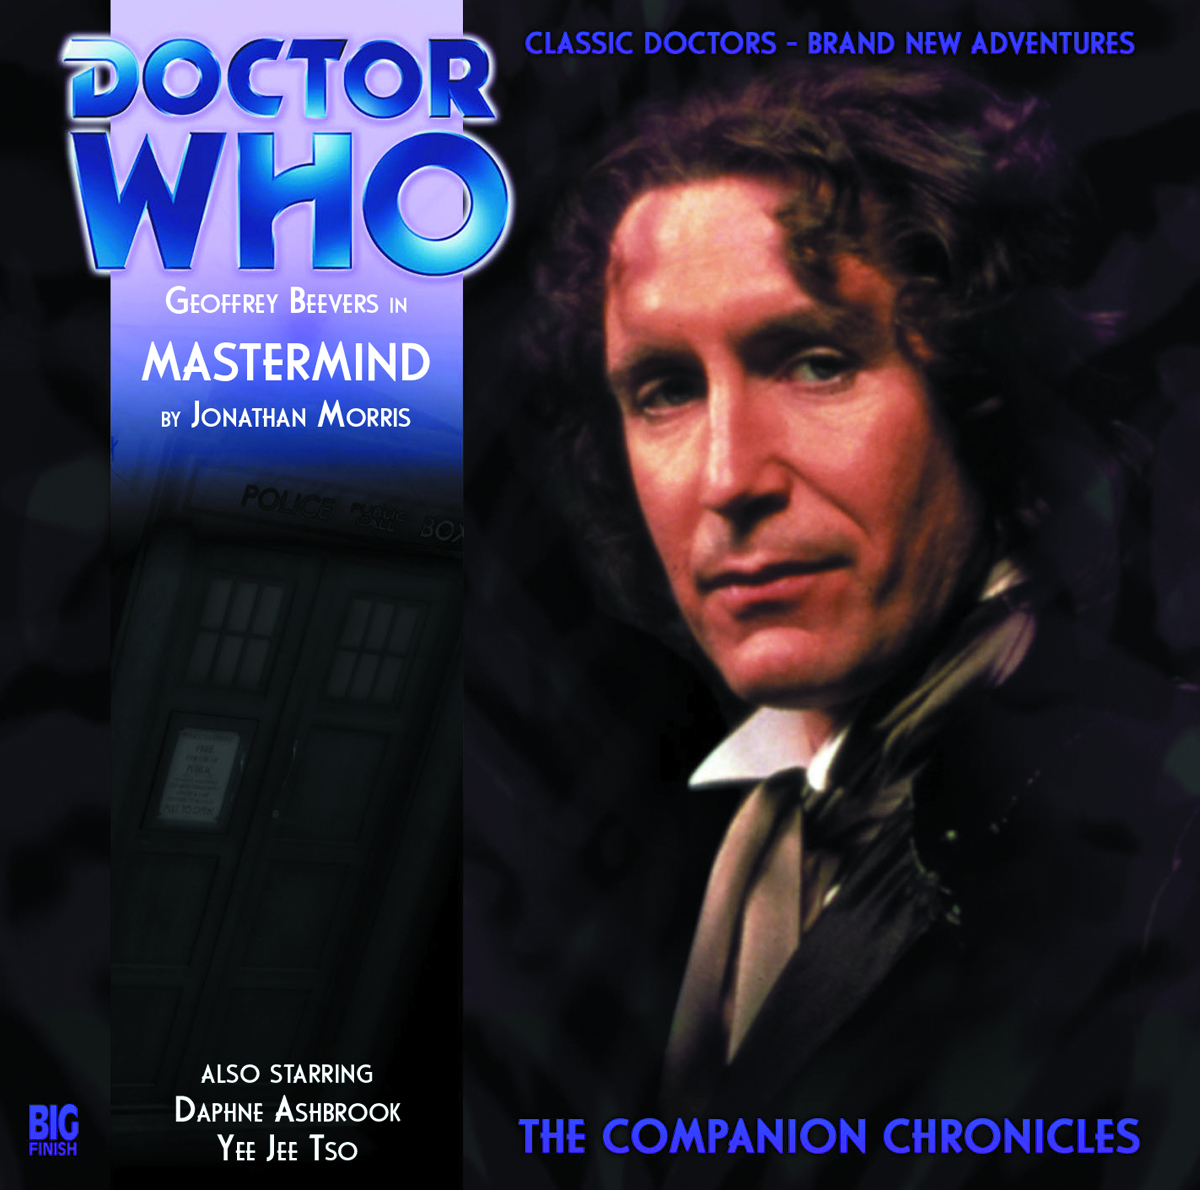 DOCTOR WHO COMP CHRON MASTERMIND AUDIO CD